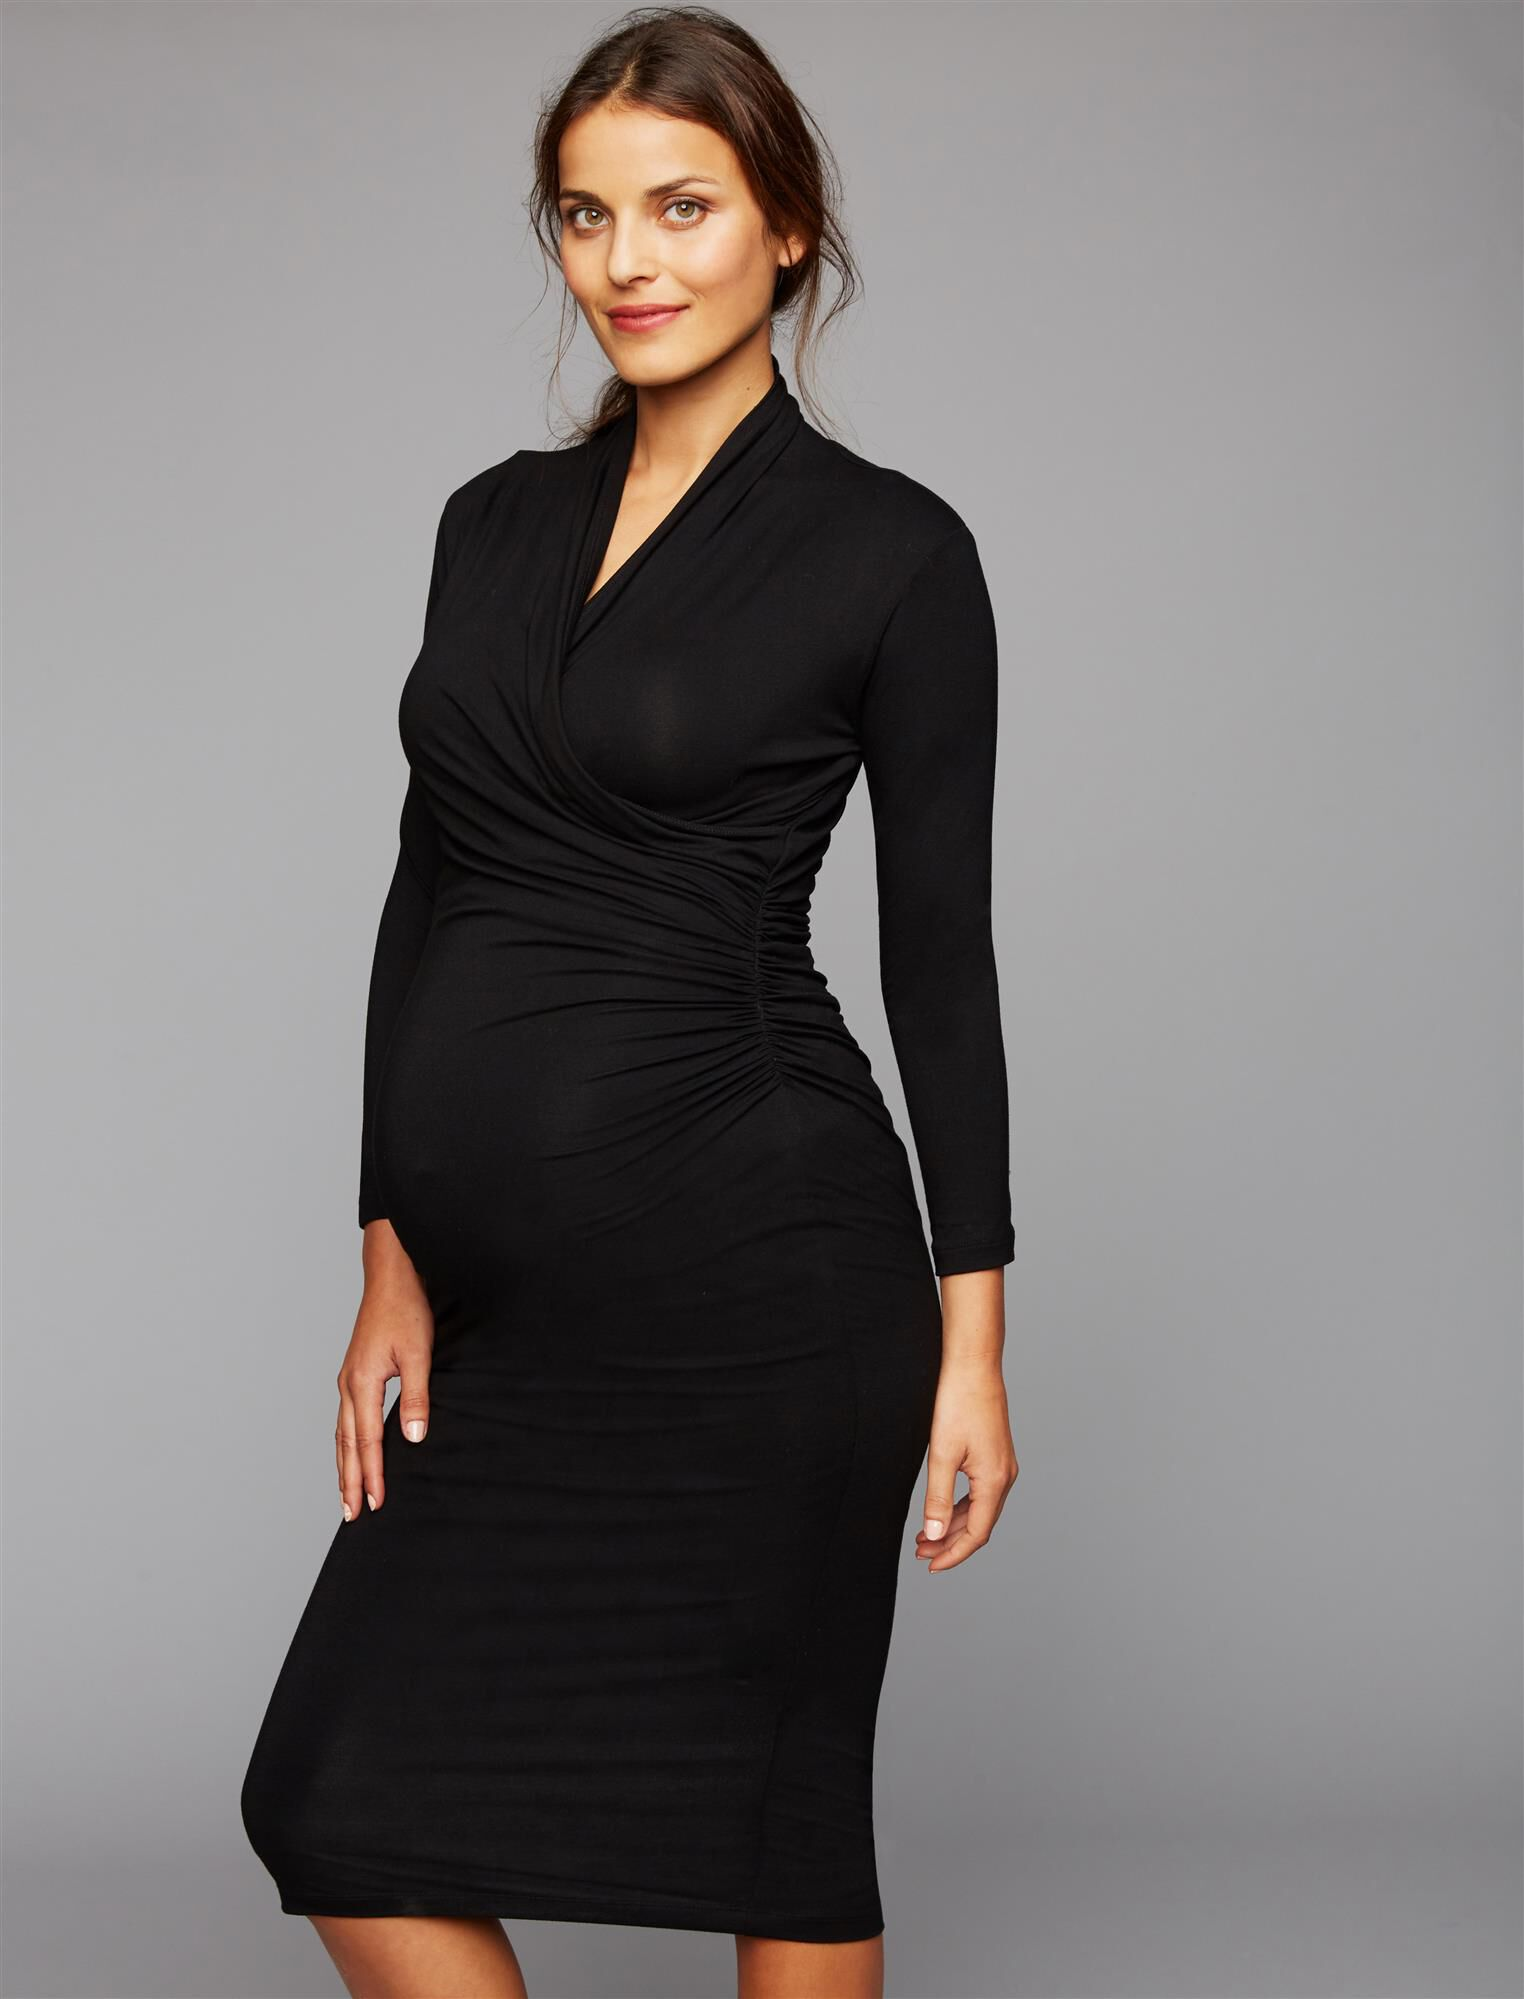 Shop vintage style maternity clothes retro 40s 50s 60s vintage style maternity clothes isabella oliver balcome maternity dress black 19500 at vintagedancer ombrellifo Gallery